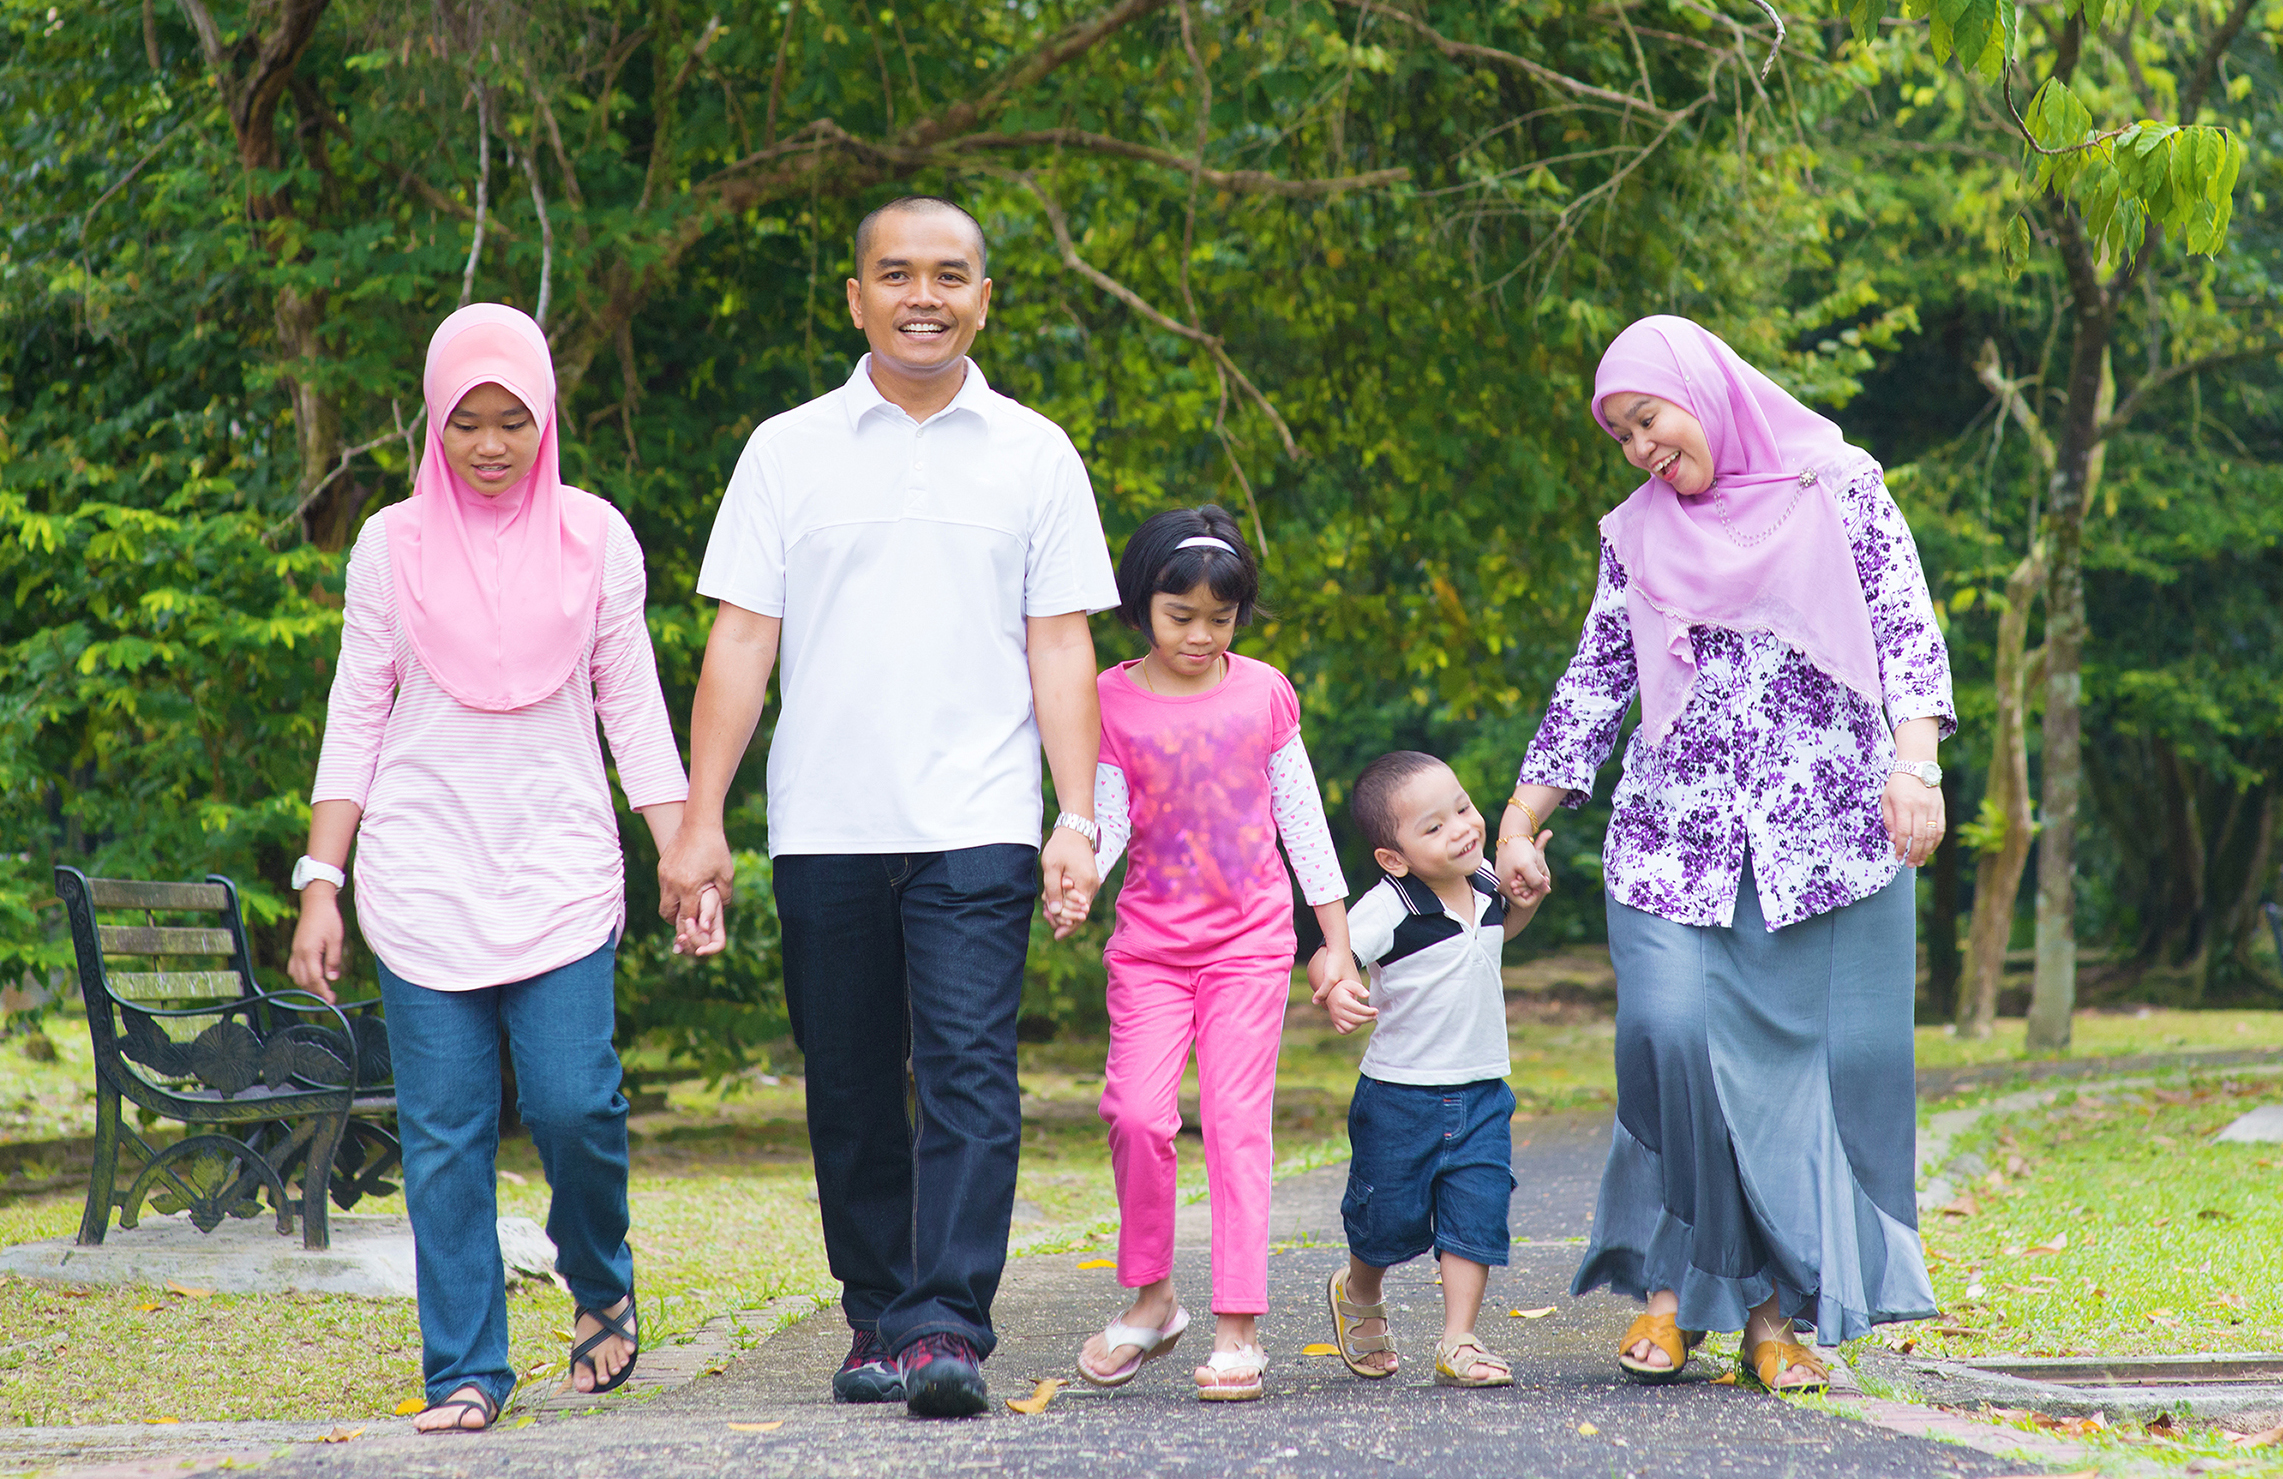 Image of a family walking together outside